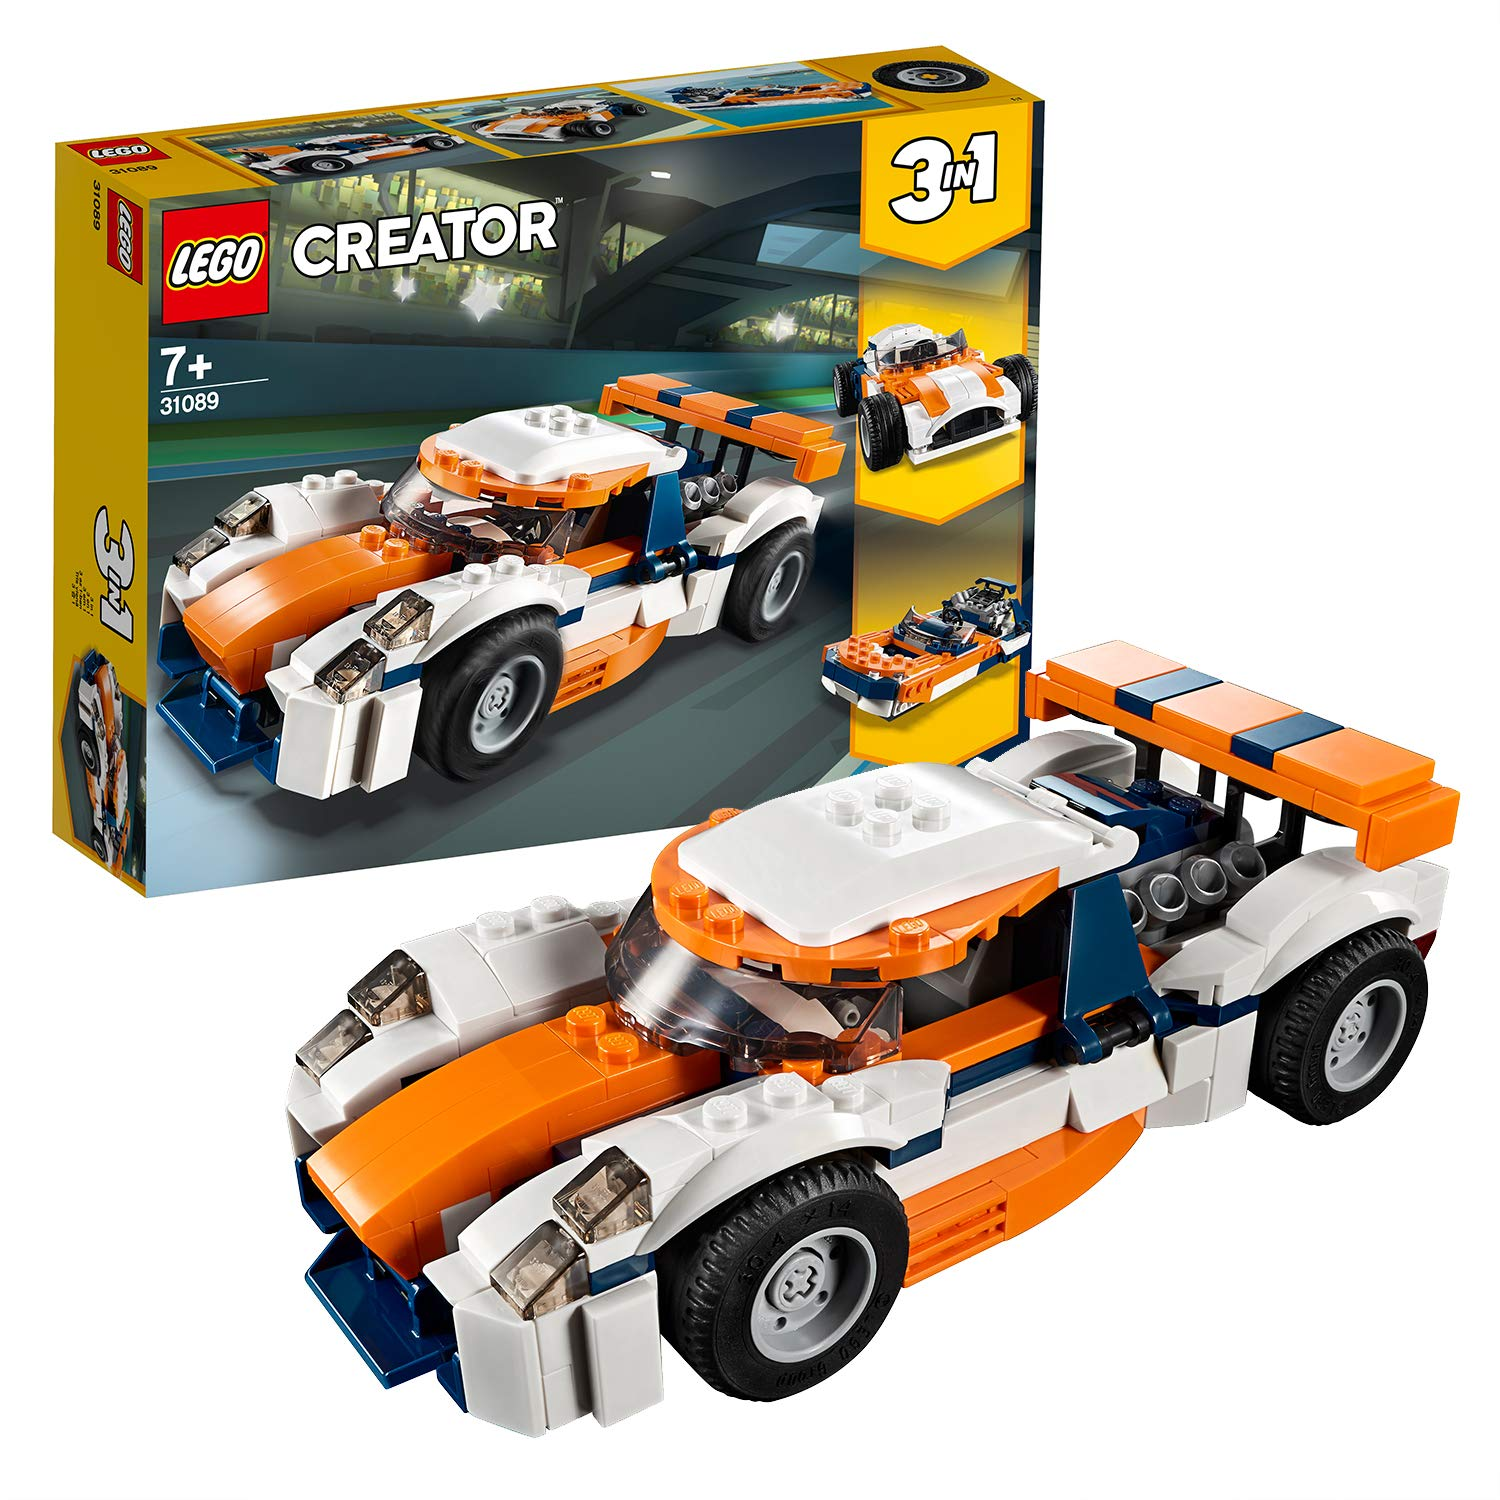 LEGO 31089 Creator 3-in-1 Sunset Track Racer Building Kit